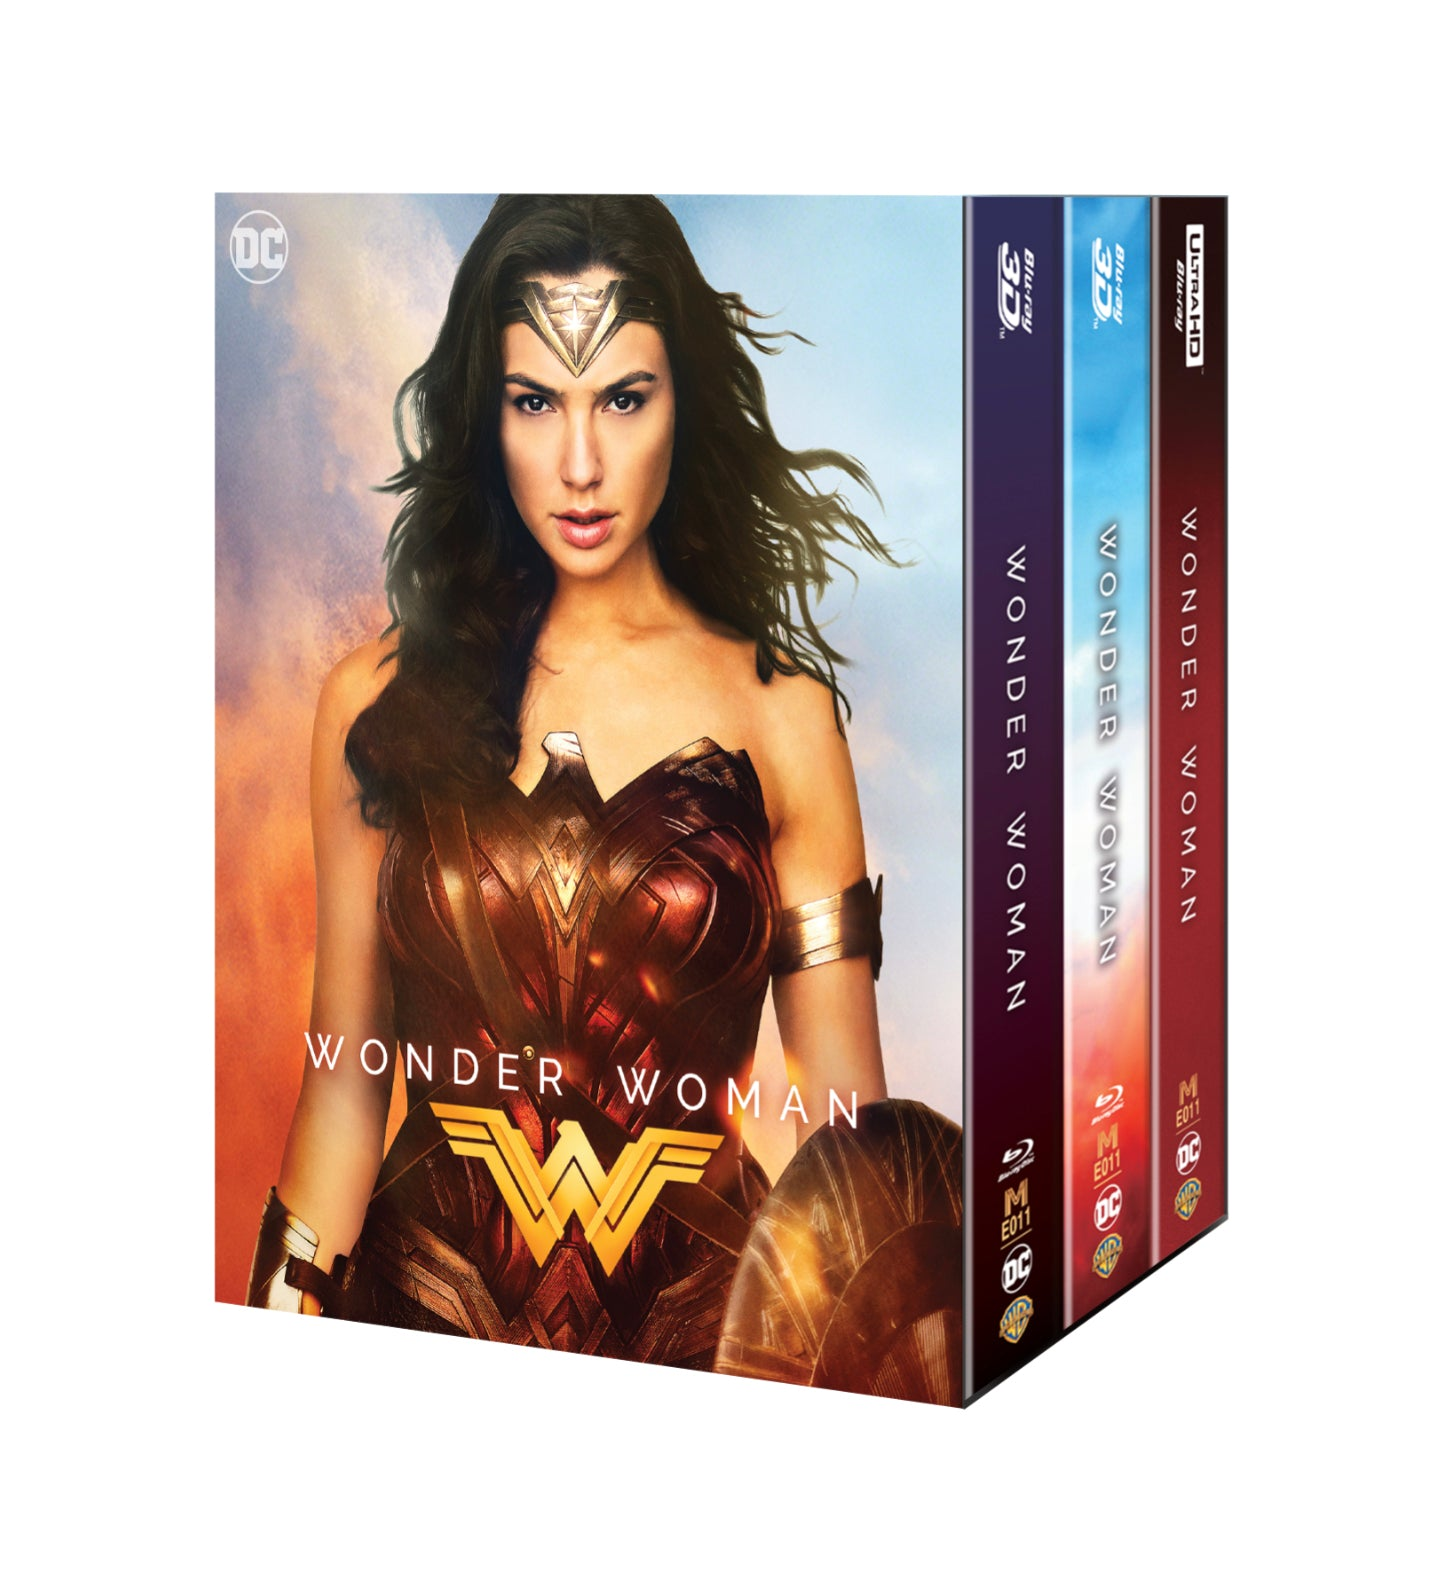 Me 11 Wonder Woman Steelbook One Click